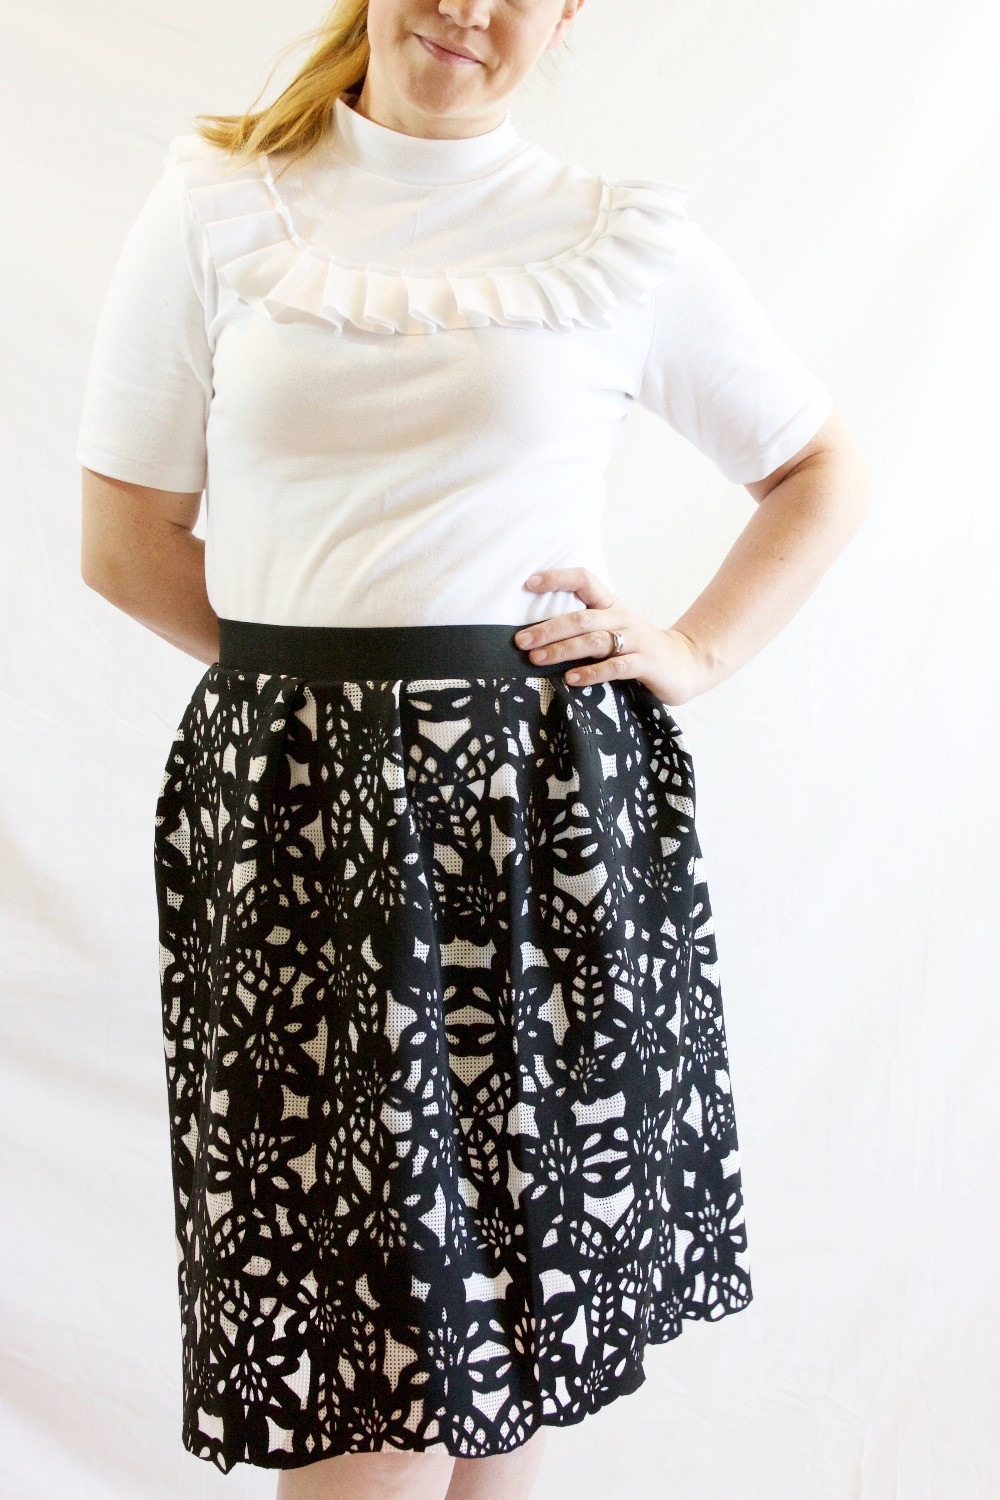 DIY Simple Skirt Instructions and Freya Sweater